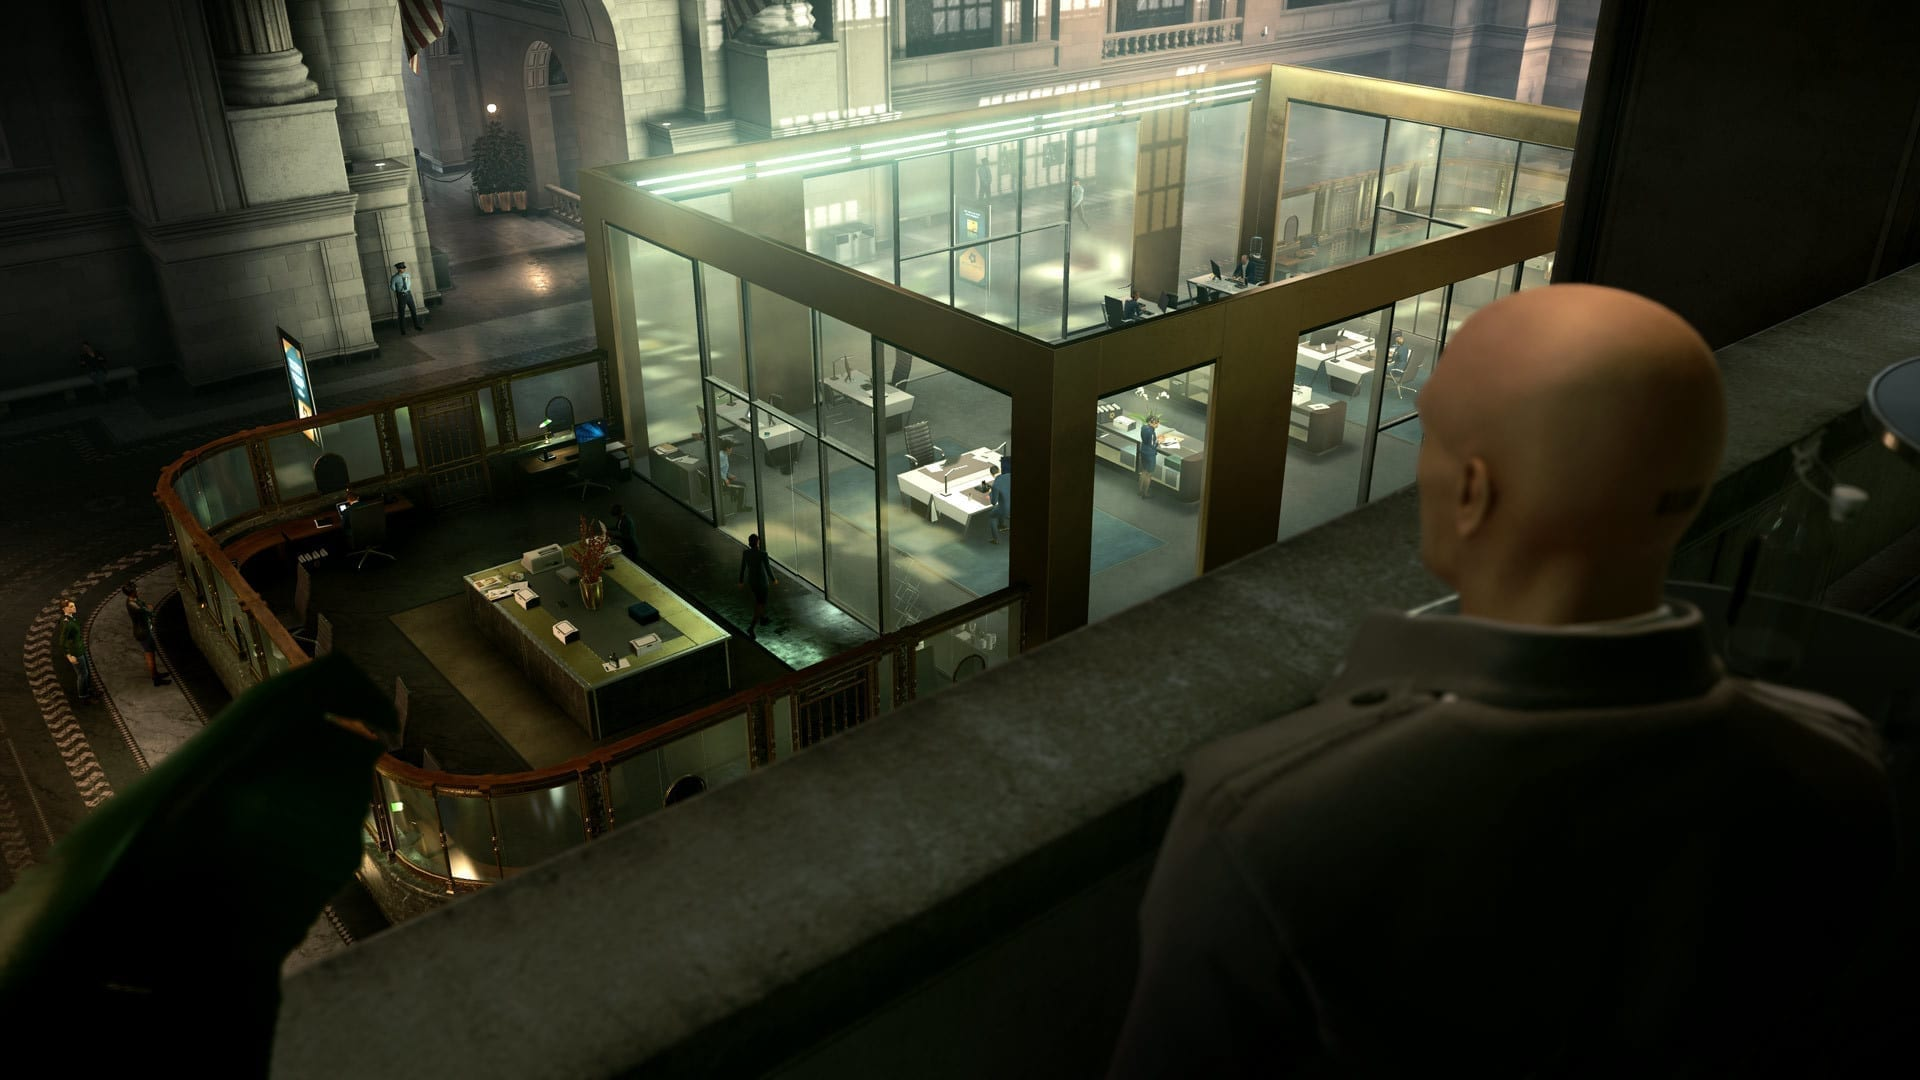 Hitman 3 won't get new DLC locations, unlike Hitman 2's New York and Haven Island